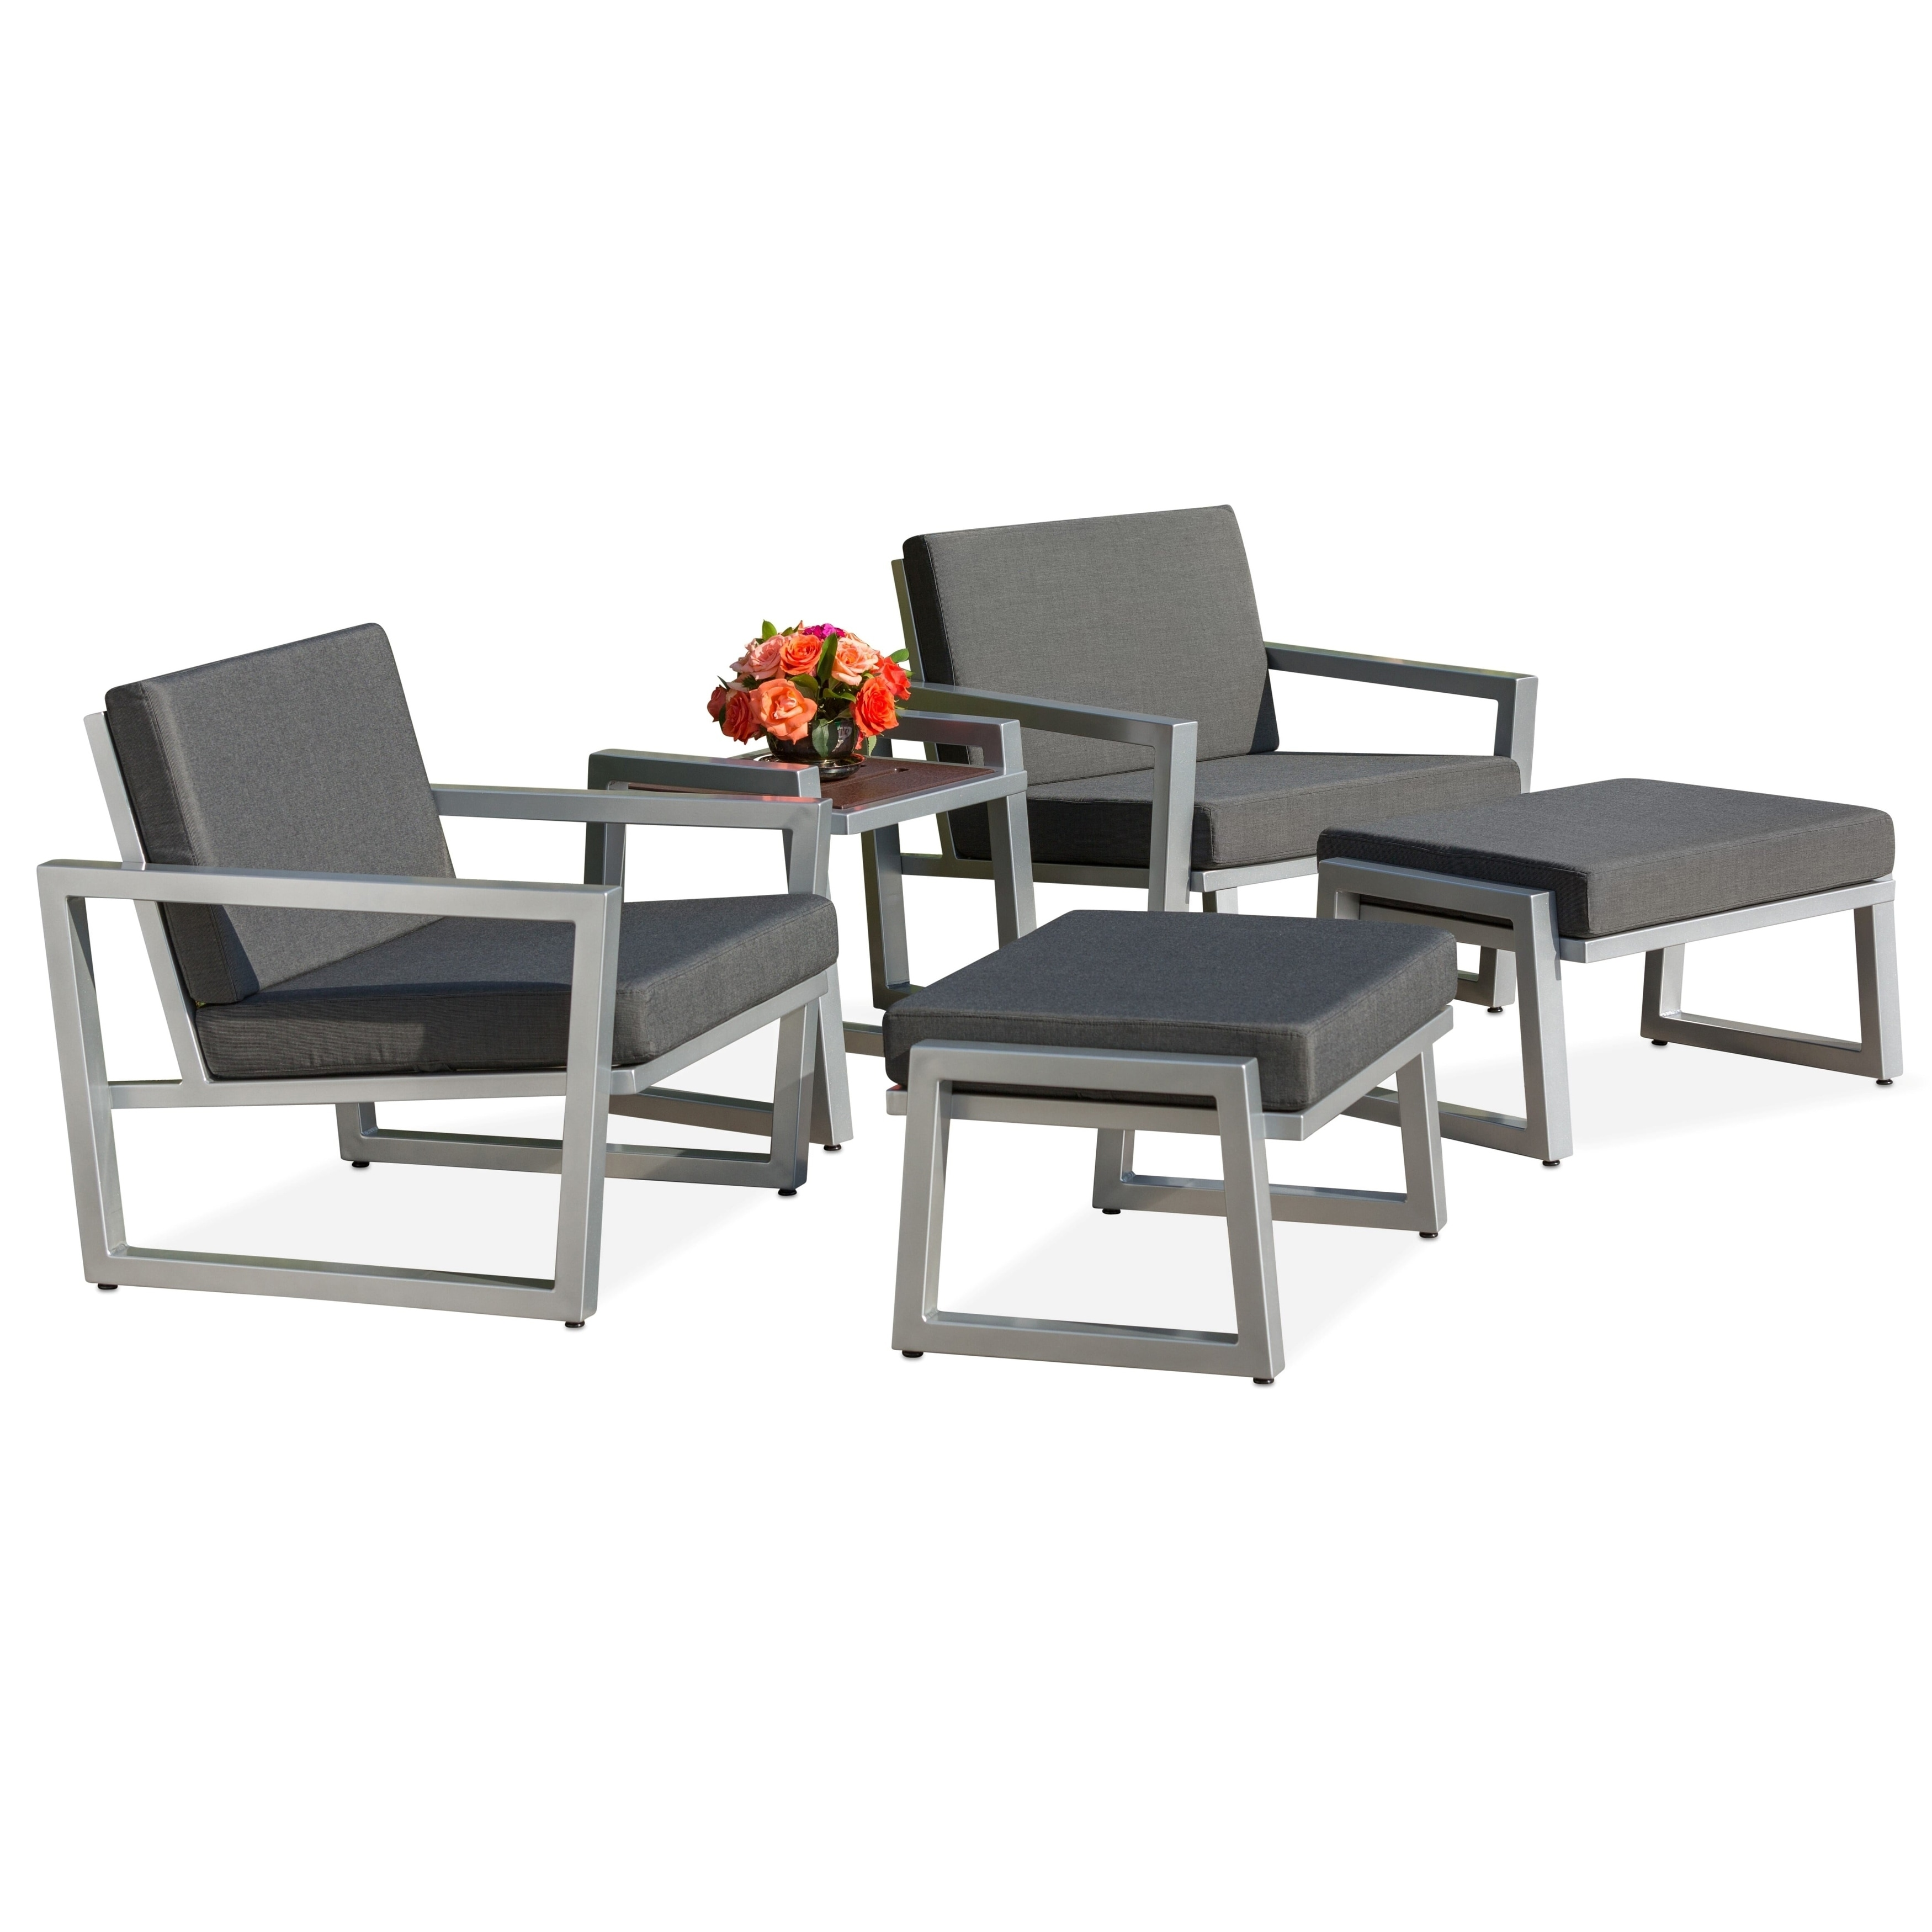 Elan Furniture Vero Outdoor 5 Piece Lounge Set Coal Sunbrella Cushions Overstock 27175645